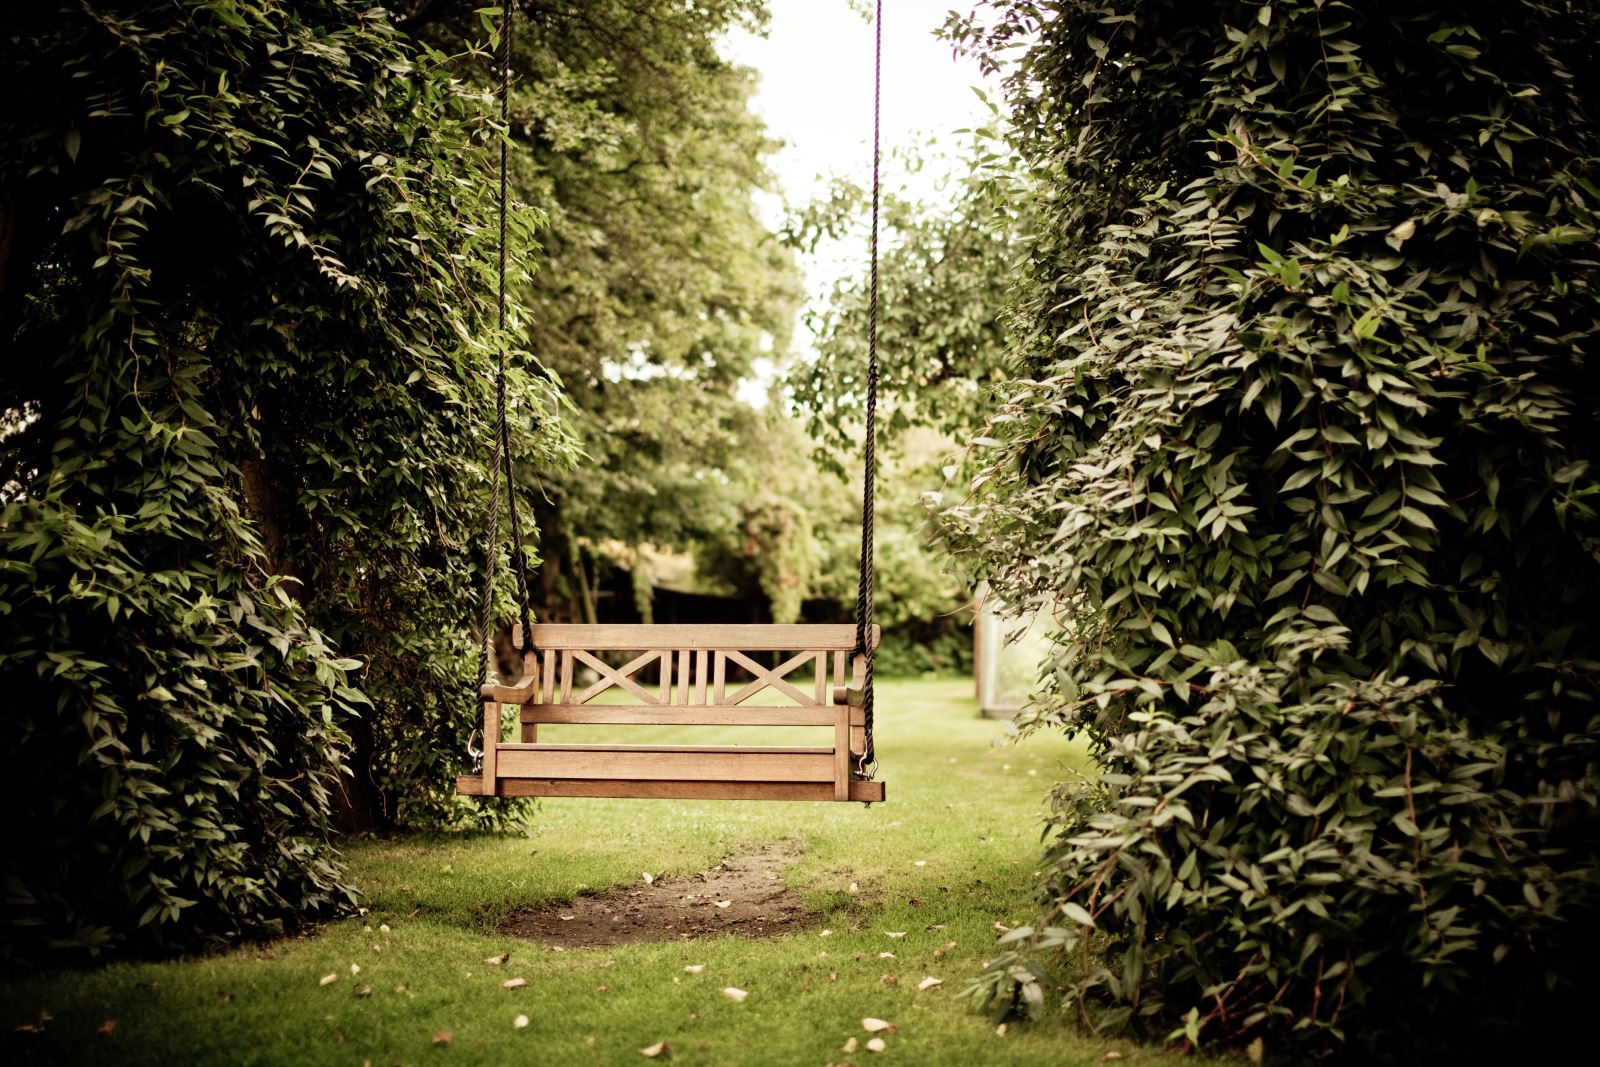 Beer garden with swing